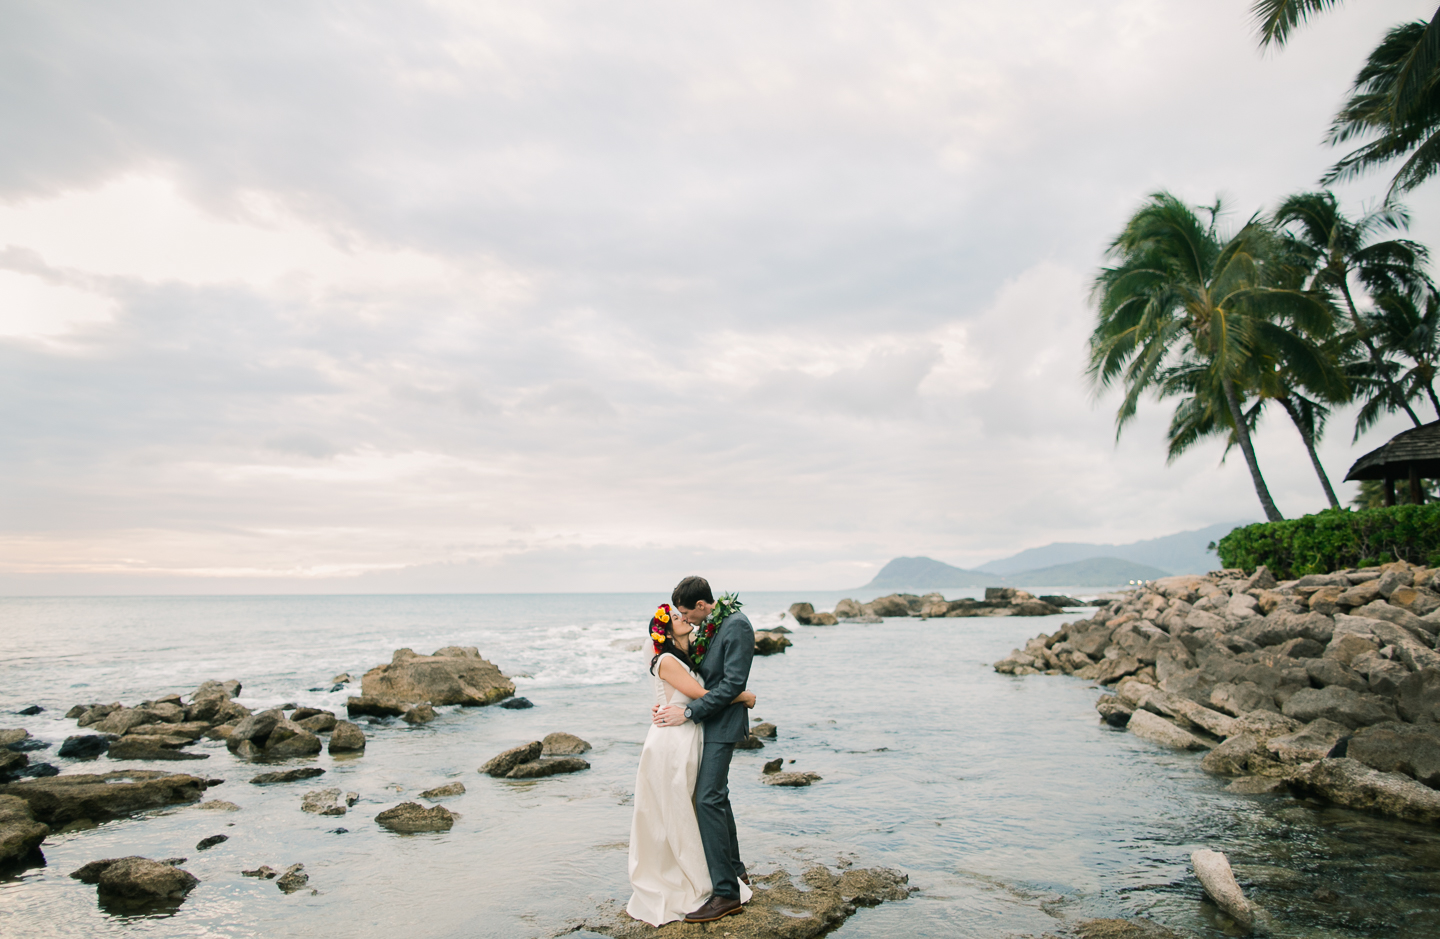 Lanikuhonua_Wedding_Hawaii.jpg